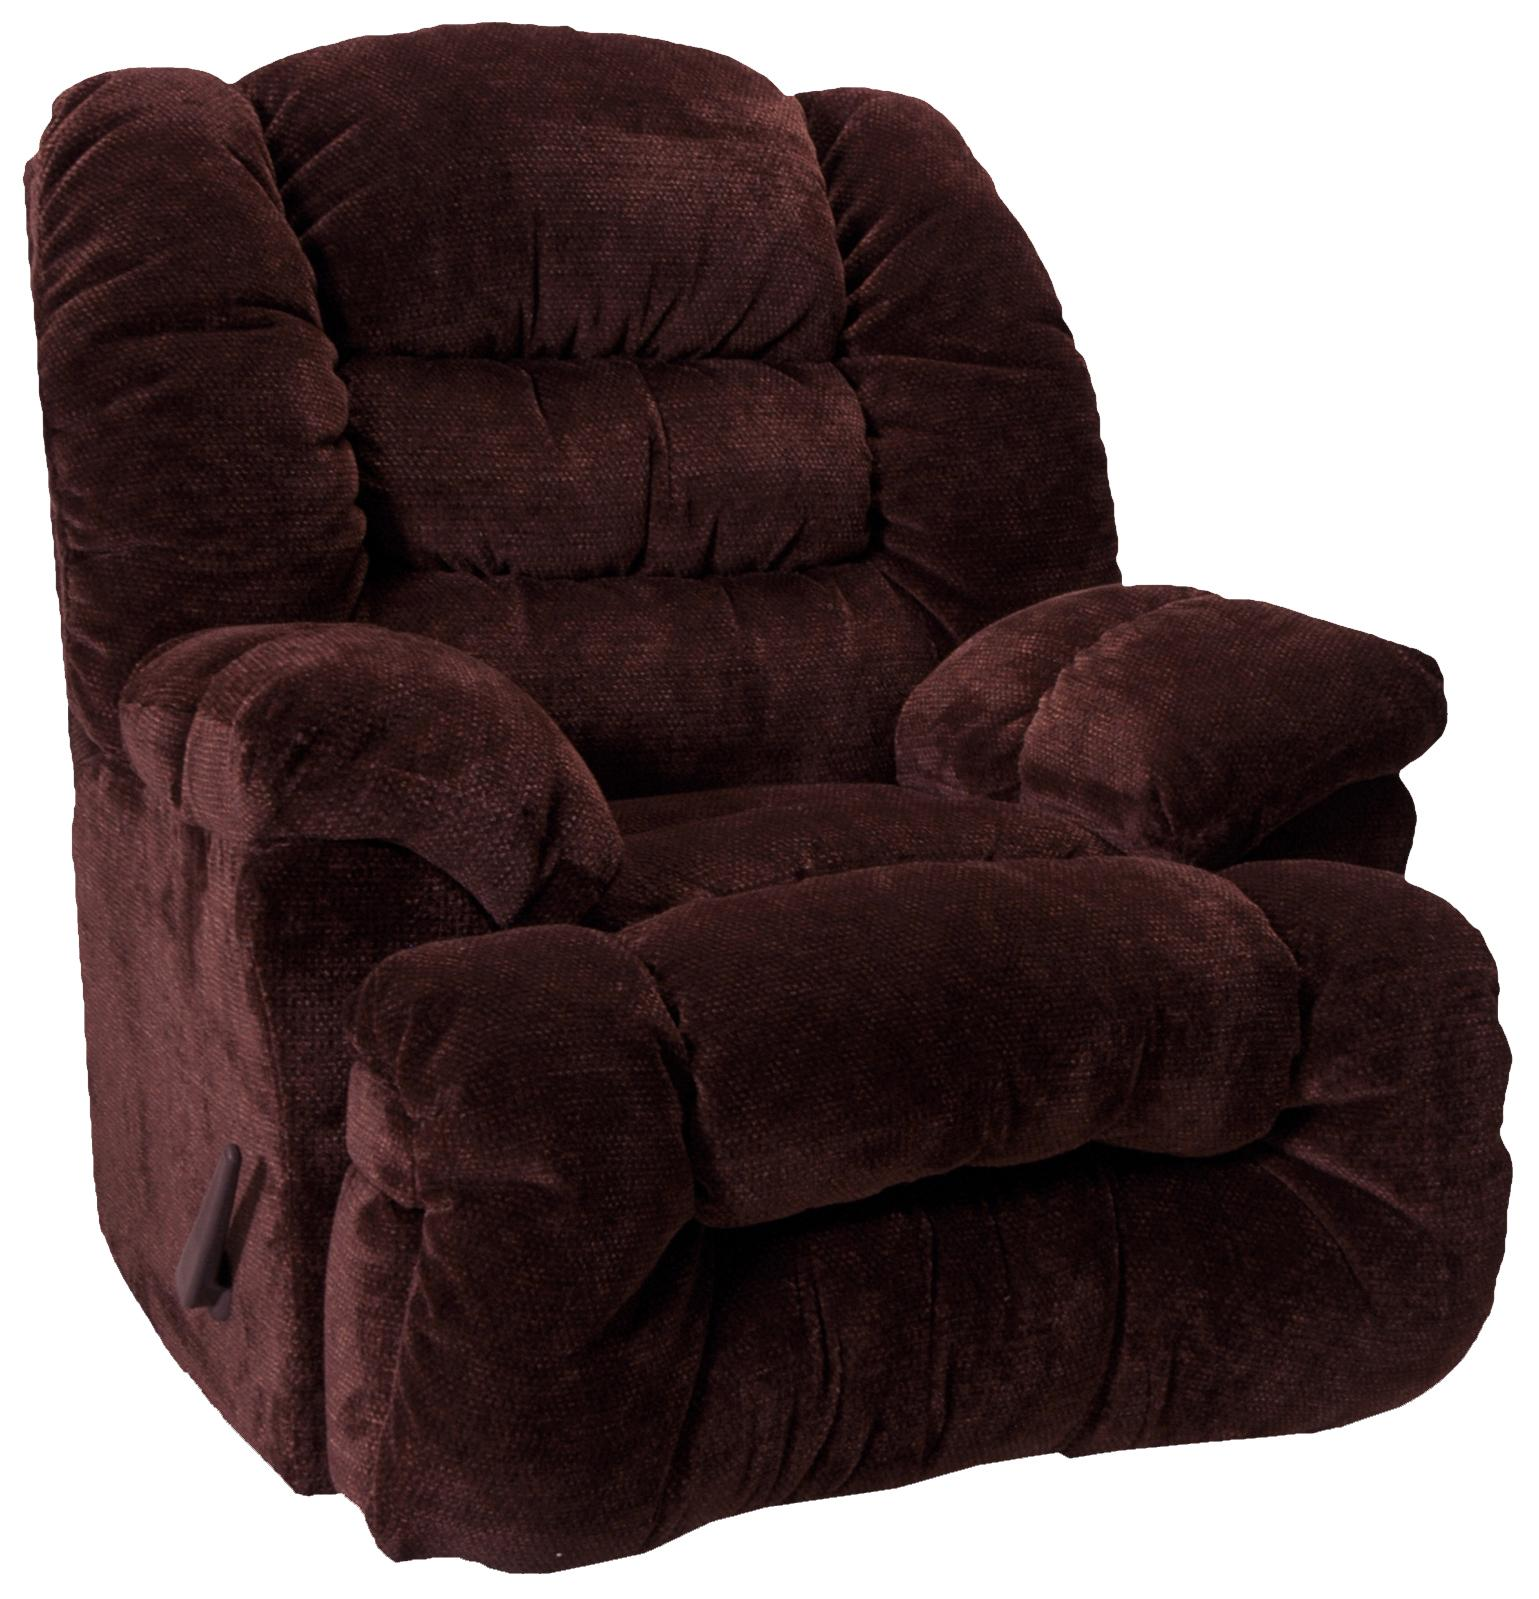 Rocker Recliners Chaise Rocker Recliner by Franklin at Wilcox Furniture